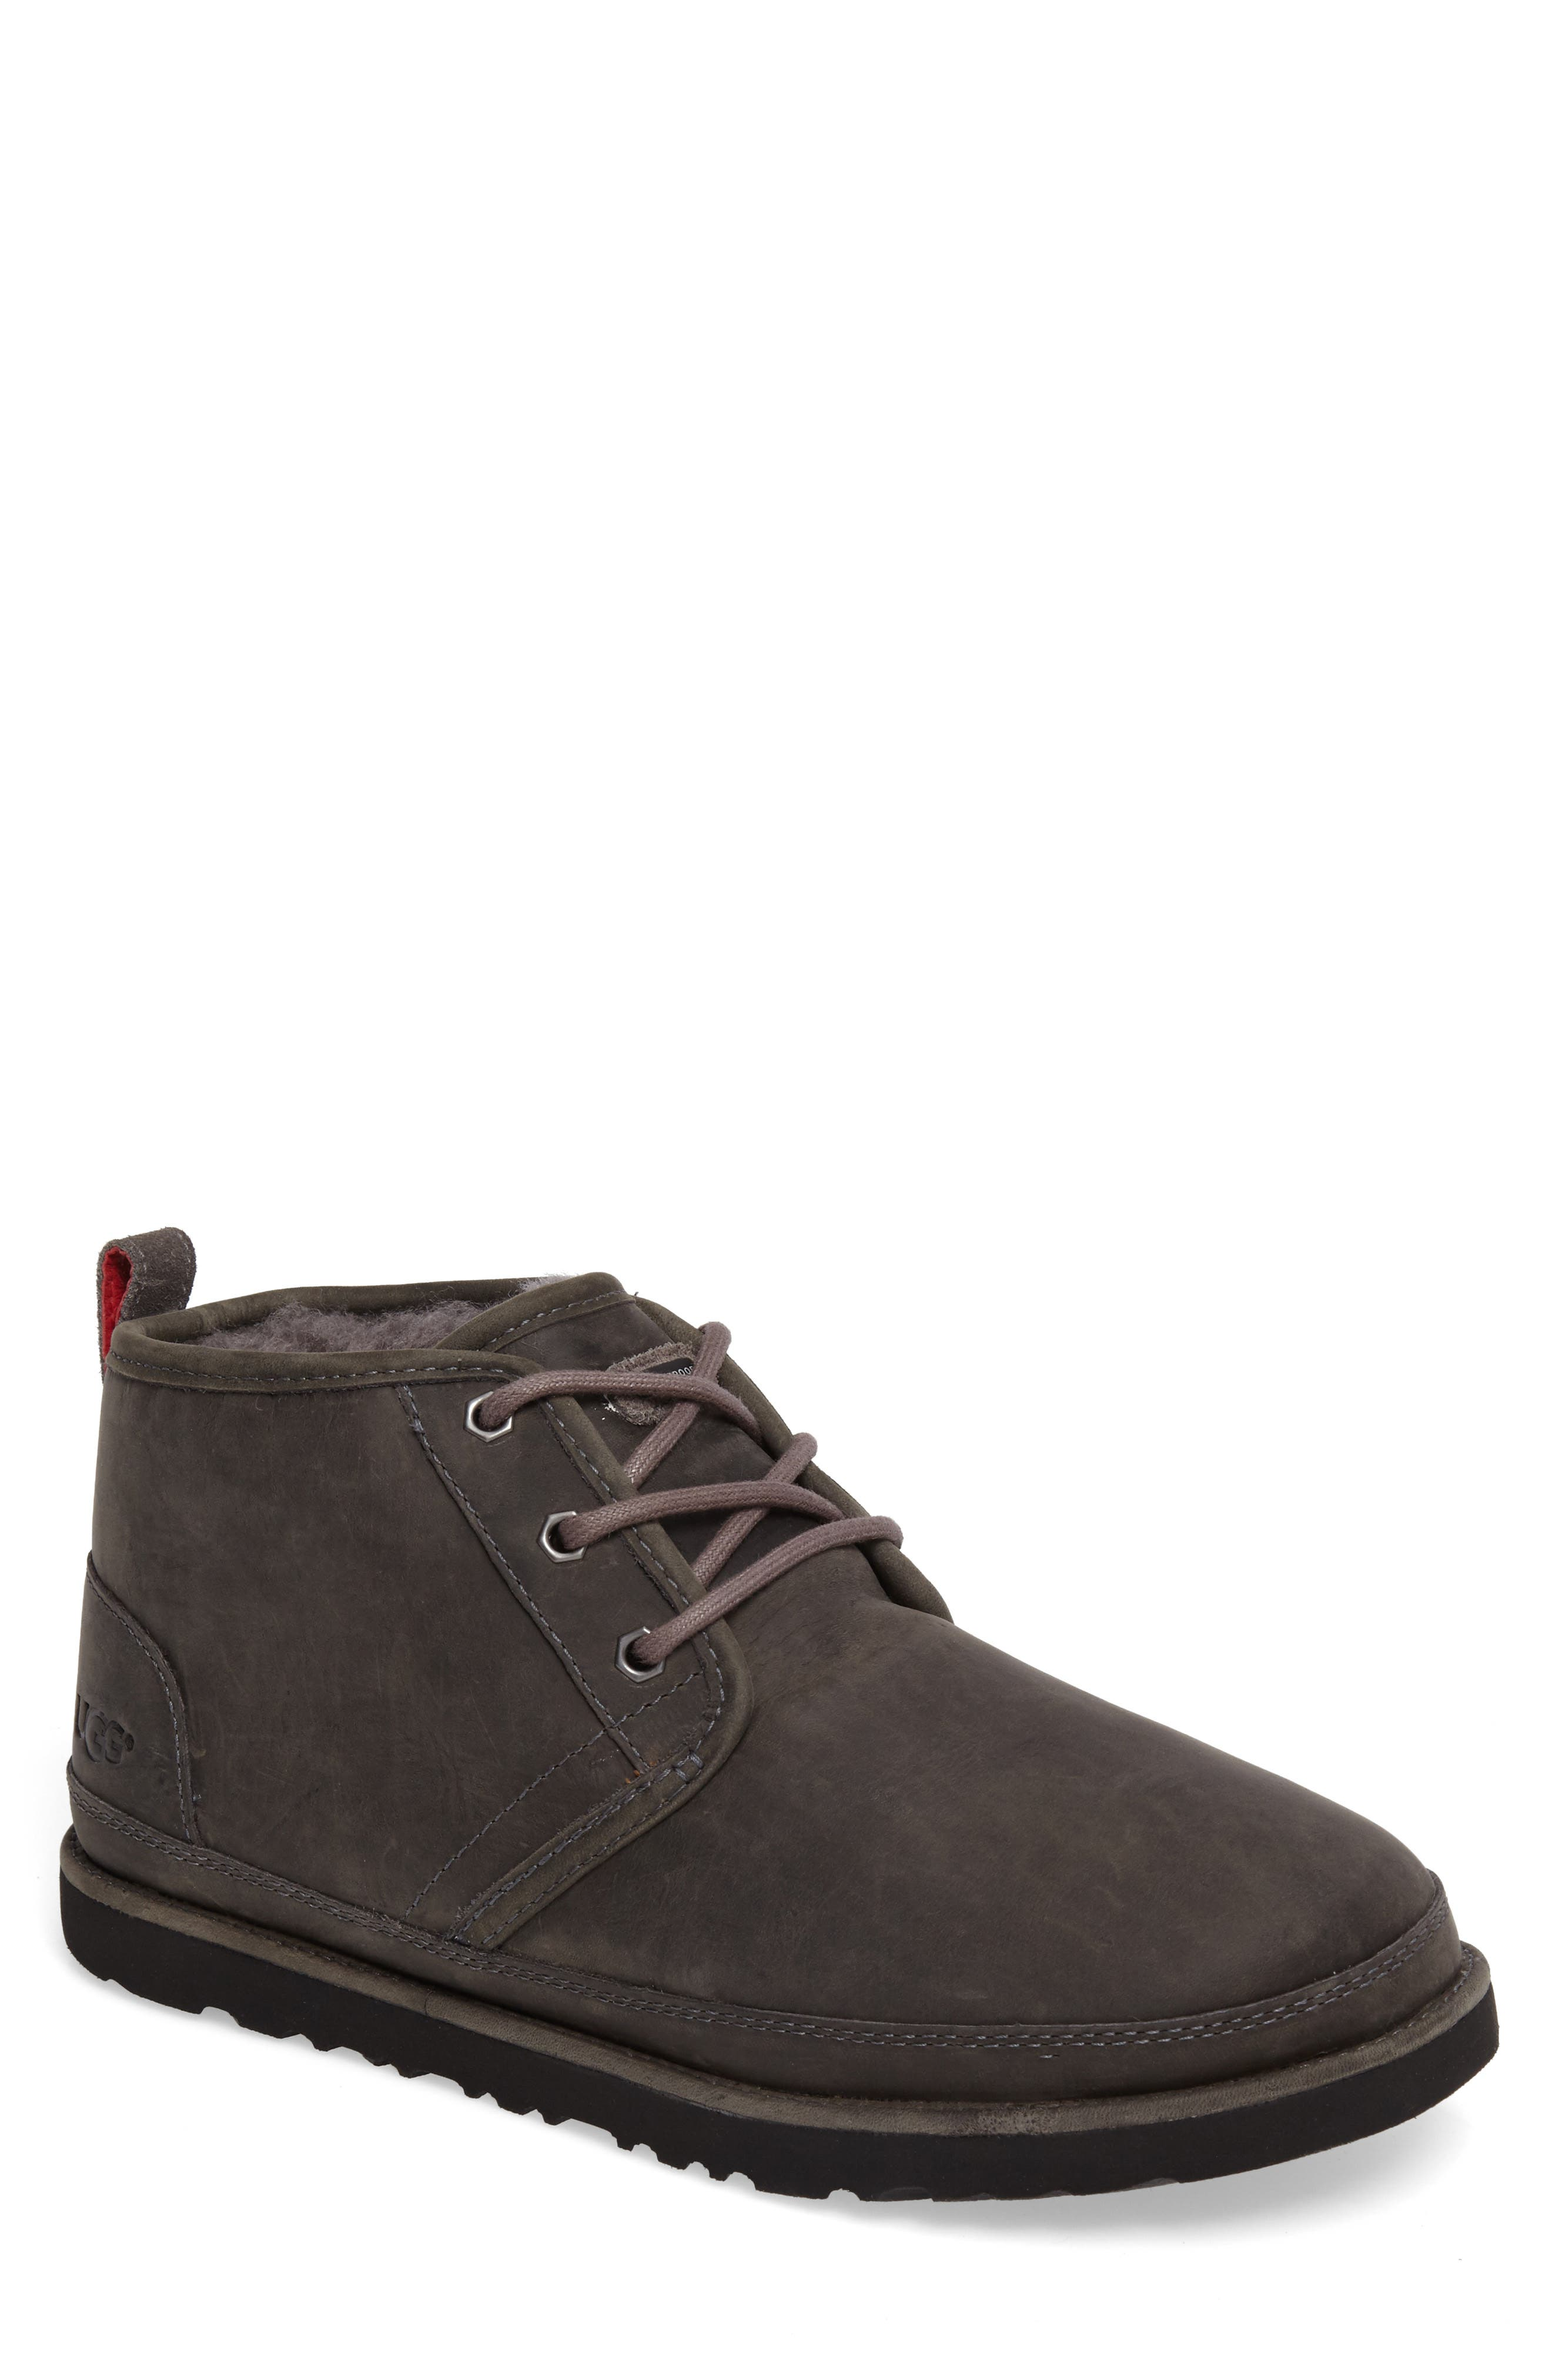 Neumel Waterproof Chukka Boot,                         Main,                         color, Charcoal